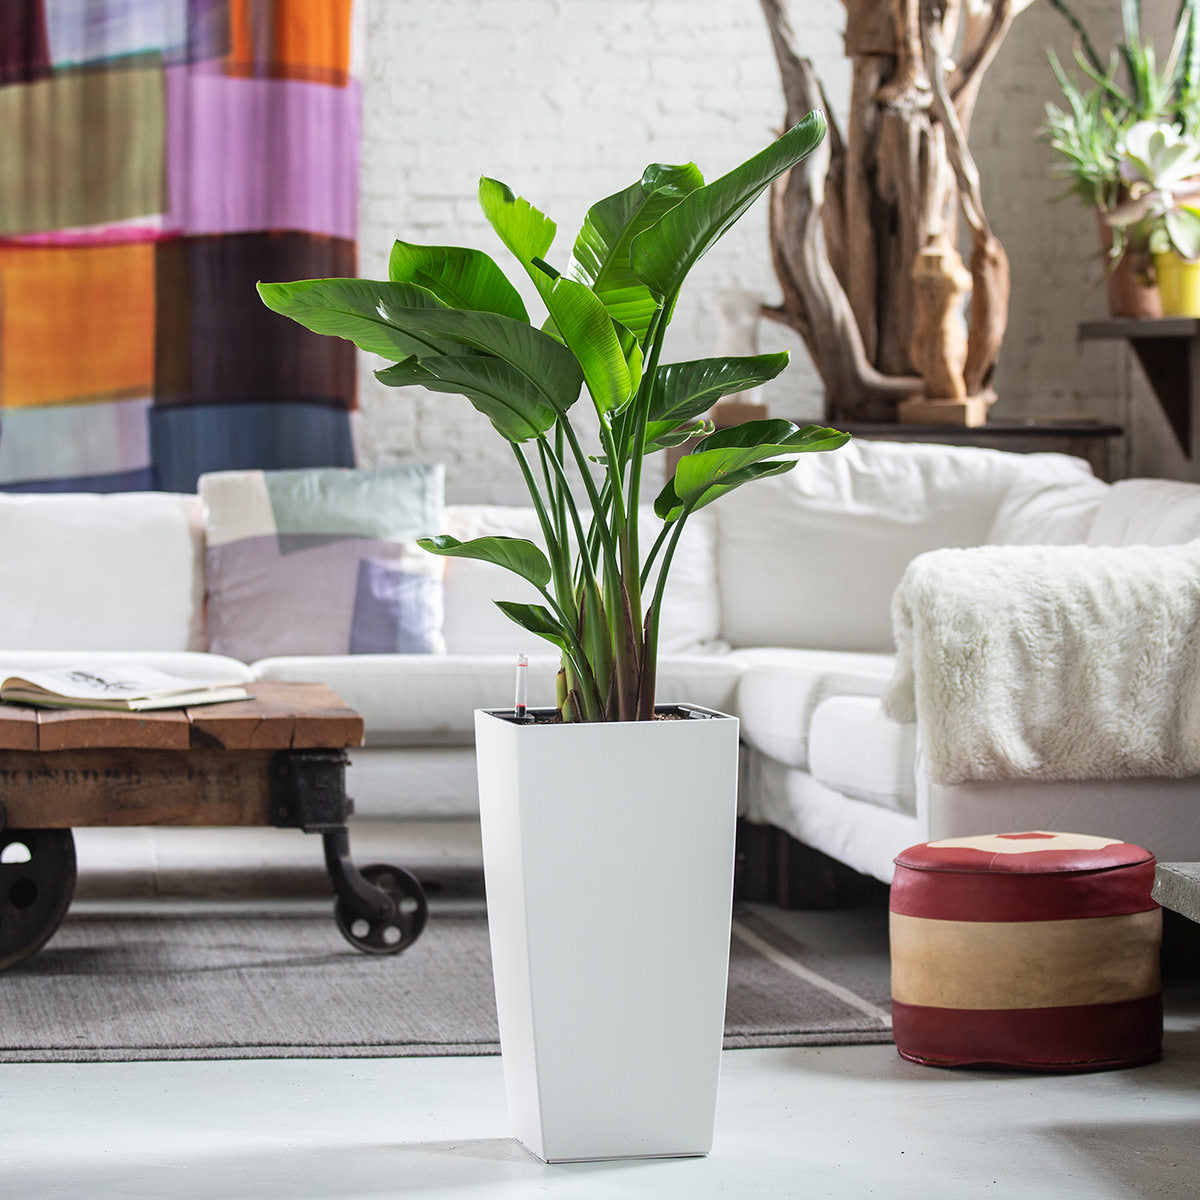 Bird of Paradise Indoor Plant Potted In White Cubico Planter - My City Plants